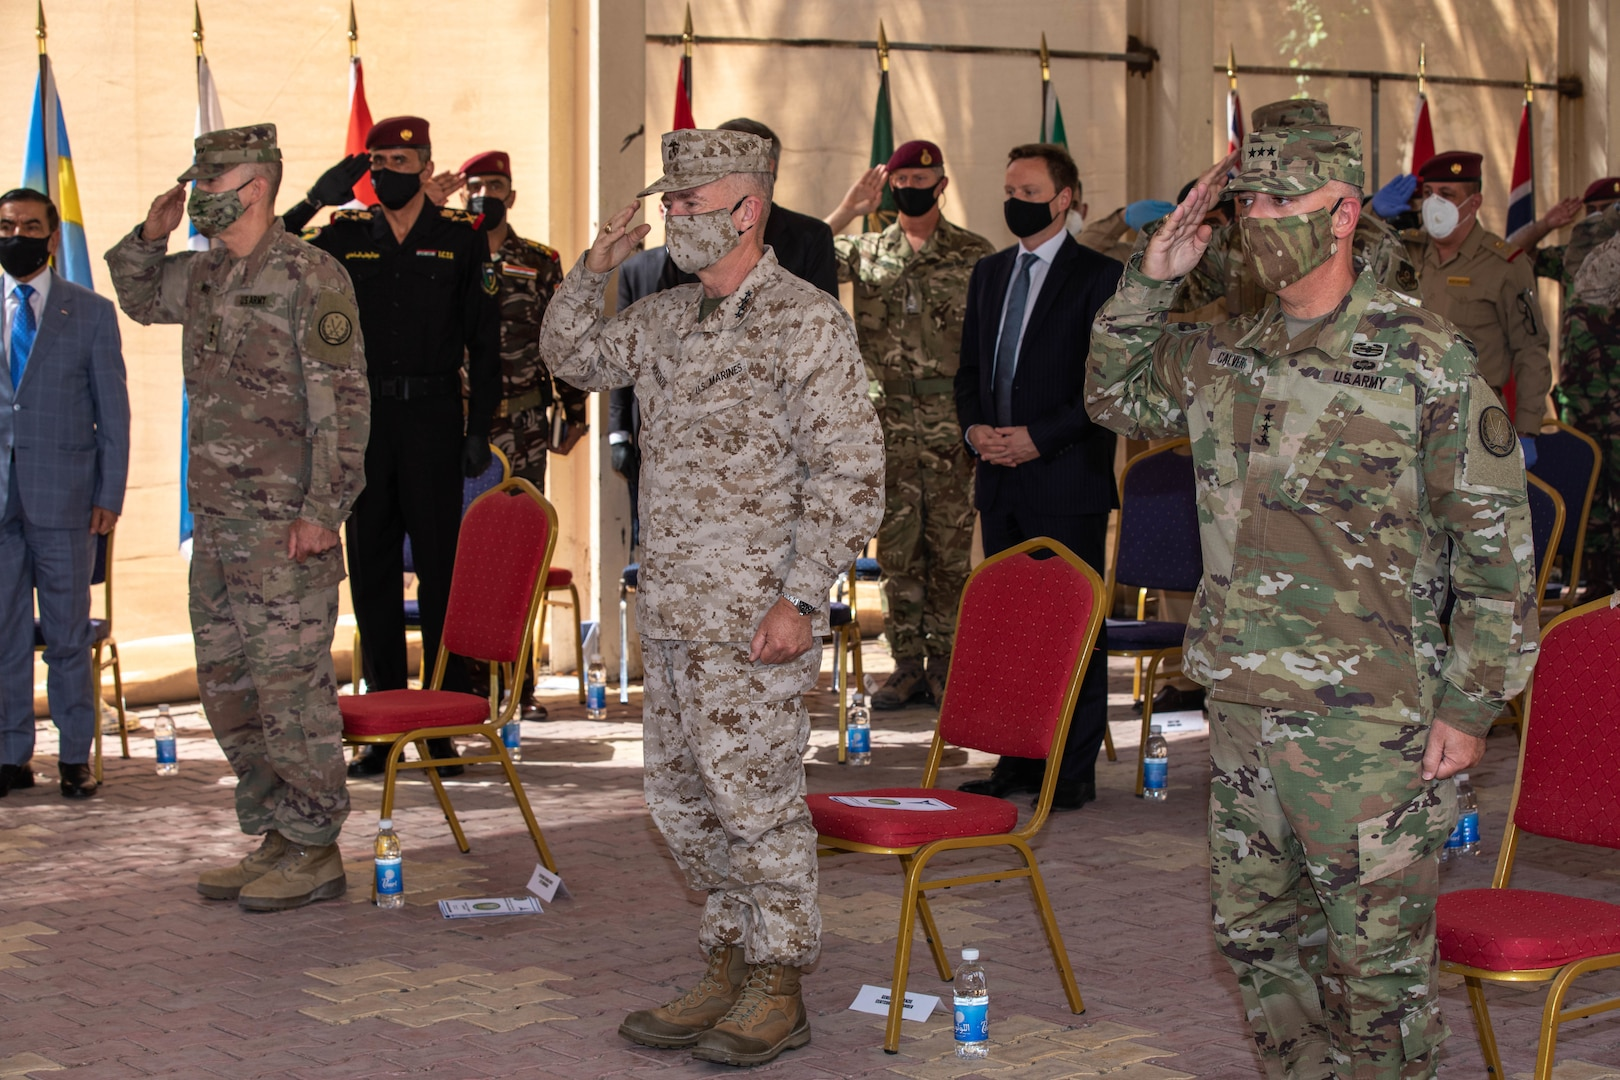 Combined Joint Task Force-Operation Inherent Resolve, the military organization to defeat Daesh in Iraq and Syria, swapped leaders during a change of command ceremony in Baghdad, Set. 9, 2020. Lt. Gen. Paul Calvert (right), Gen. Kenneth F. McKenzie Jr. (central), commanding general, U.S. Central Command, and Lt. Gen. Pat White (left), III Armored Corps commanding general, salute during a ceremony to welcome Gen. Calvert as the new CJTF-OIR commander.